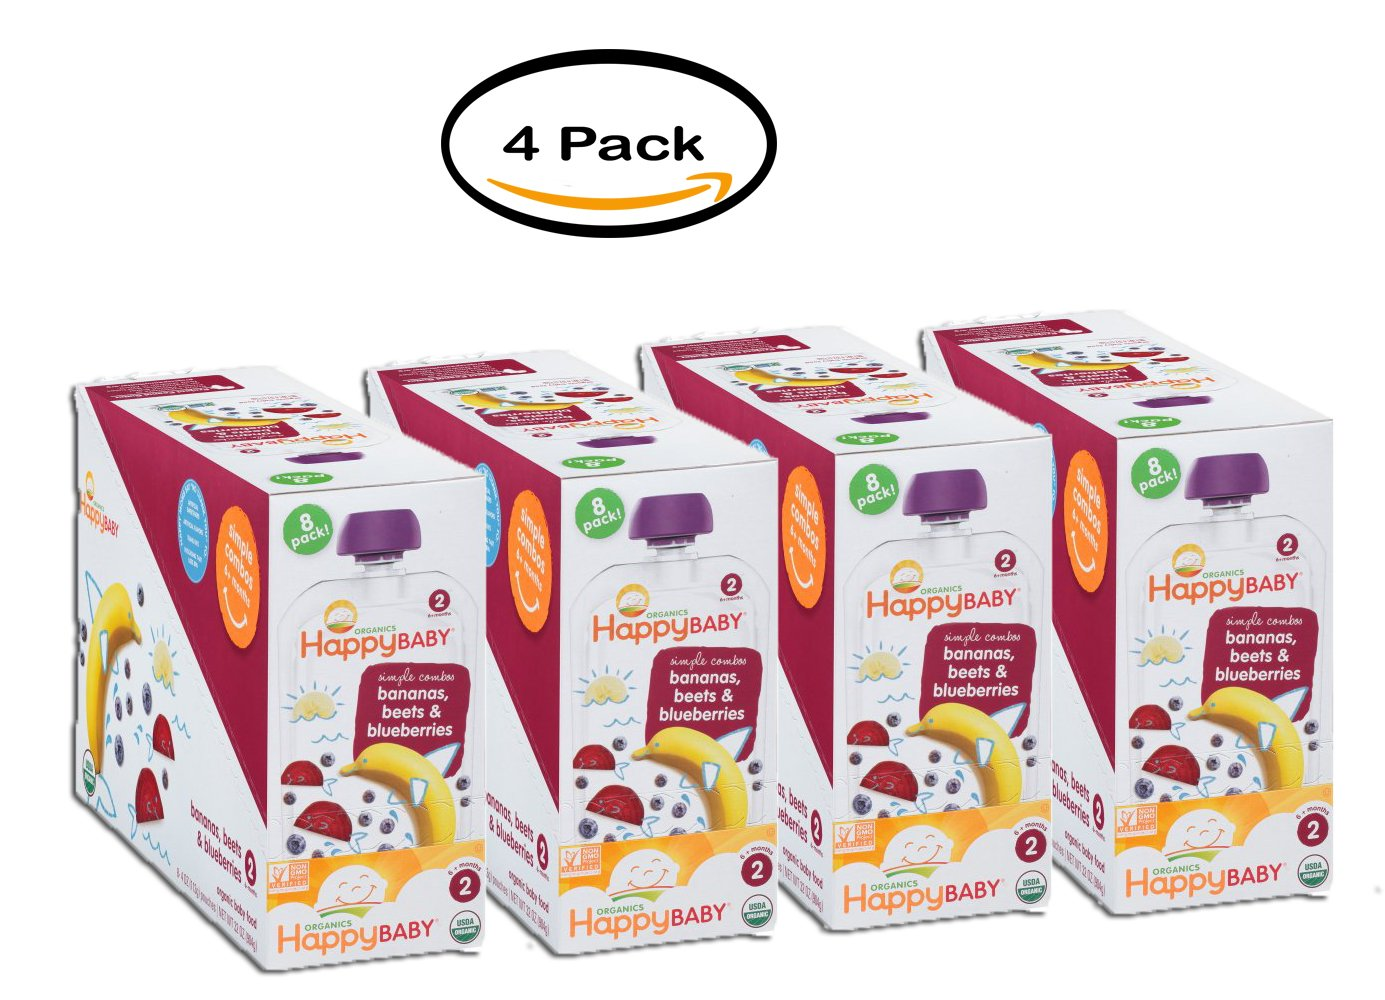 PACK OF 4 - Happy Baby Simple Combos Bananas, Beets & Blueberries Organic Baby Food 8- 4oz. Pouches